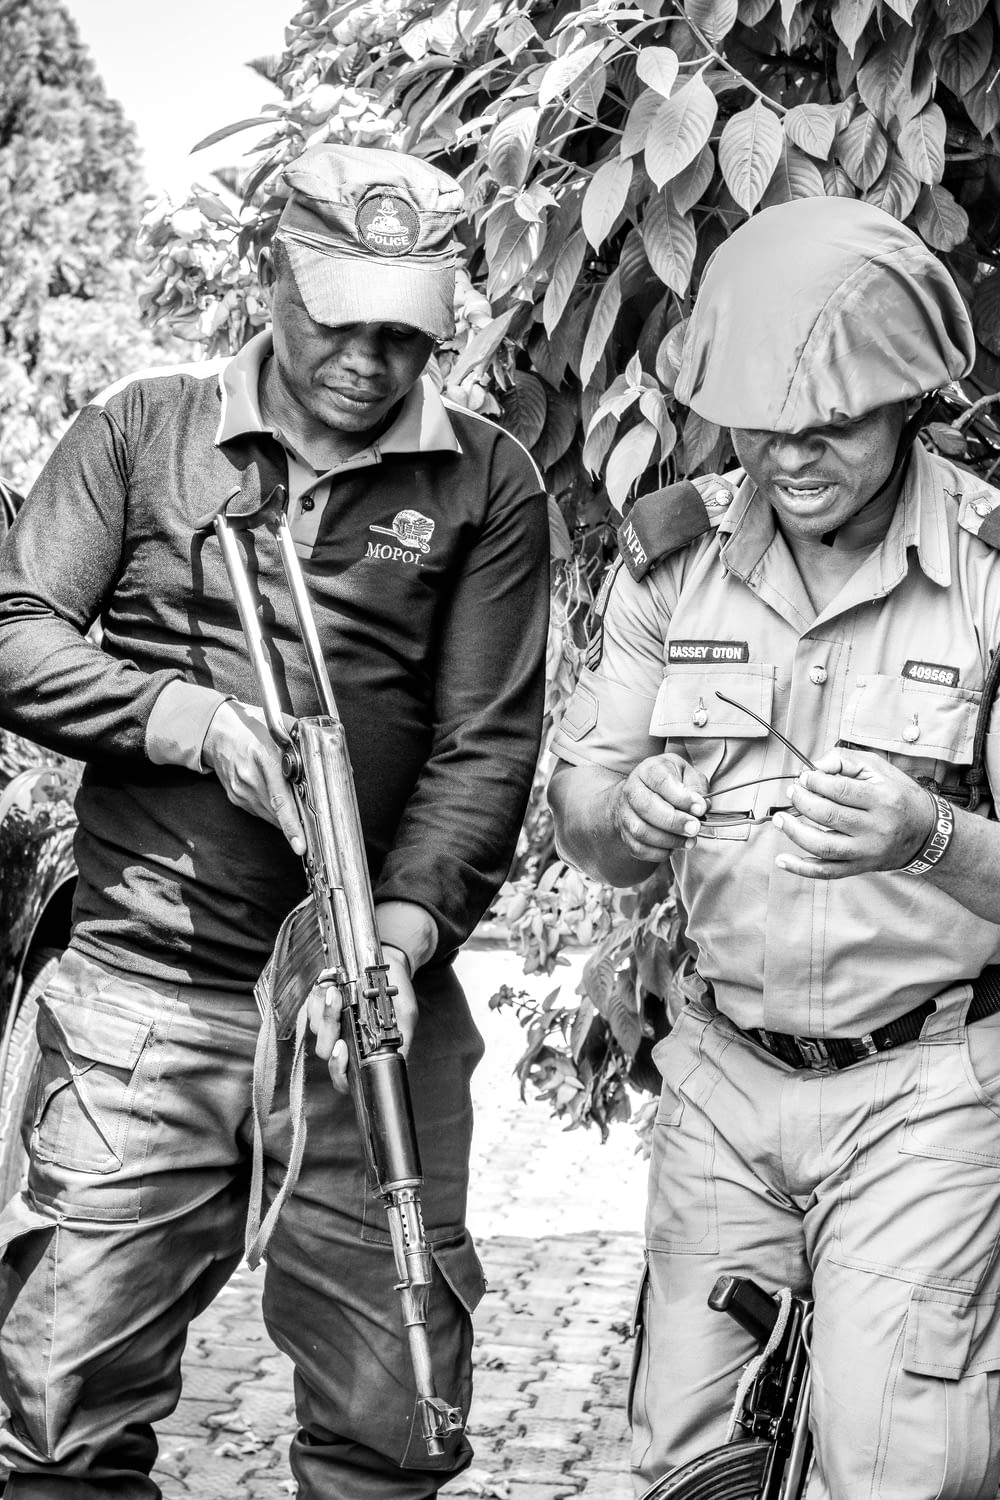 grayscale photo of 2 men in camouflage uniform holding rifle